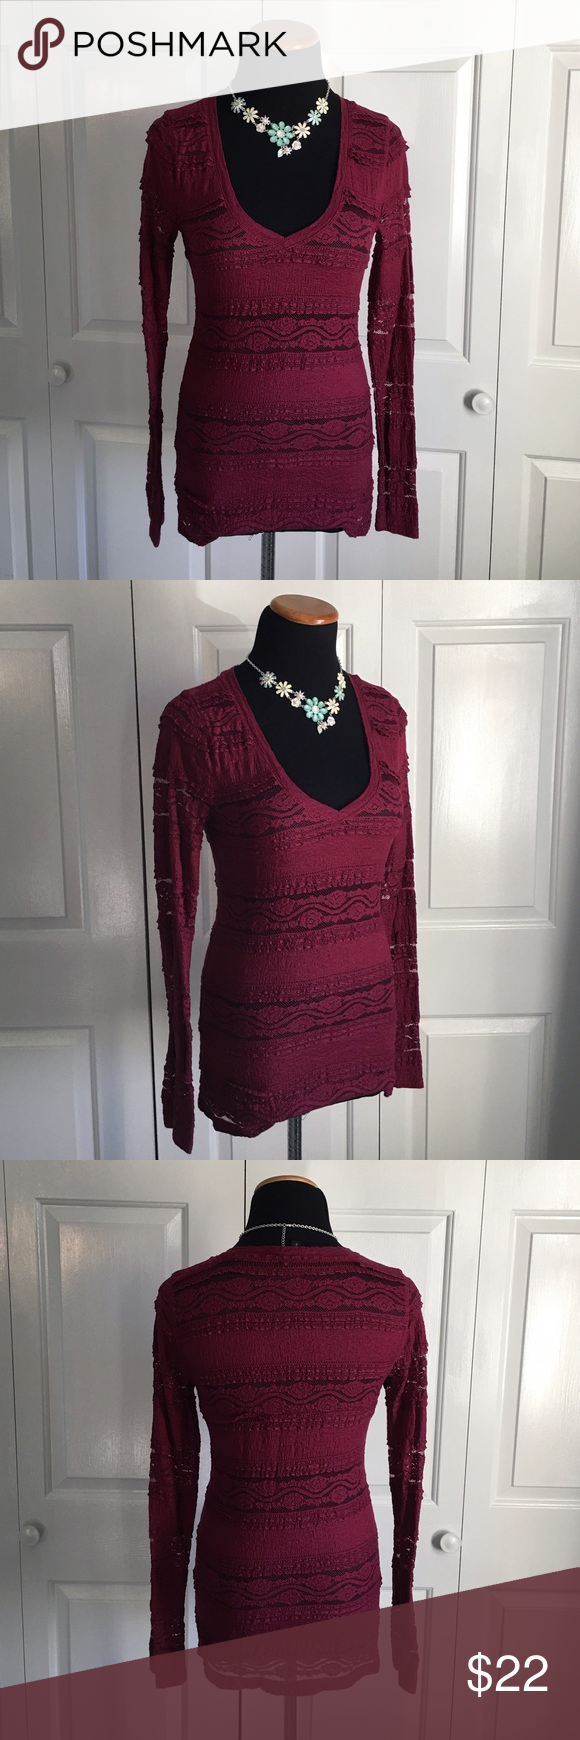 Berry Lace Top Berry colored lace long sleeve top. Worn once, excellent condition. Express Tops Blouses